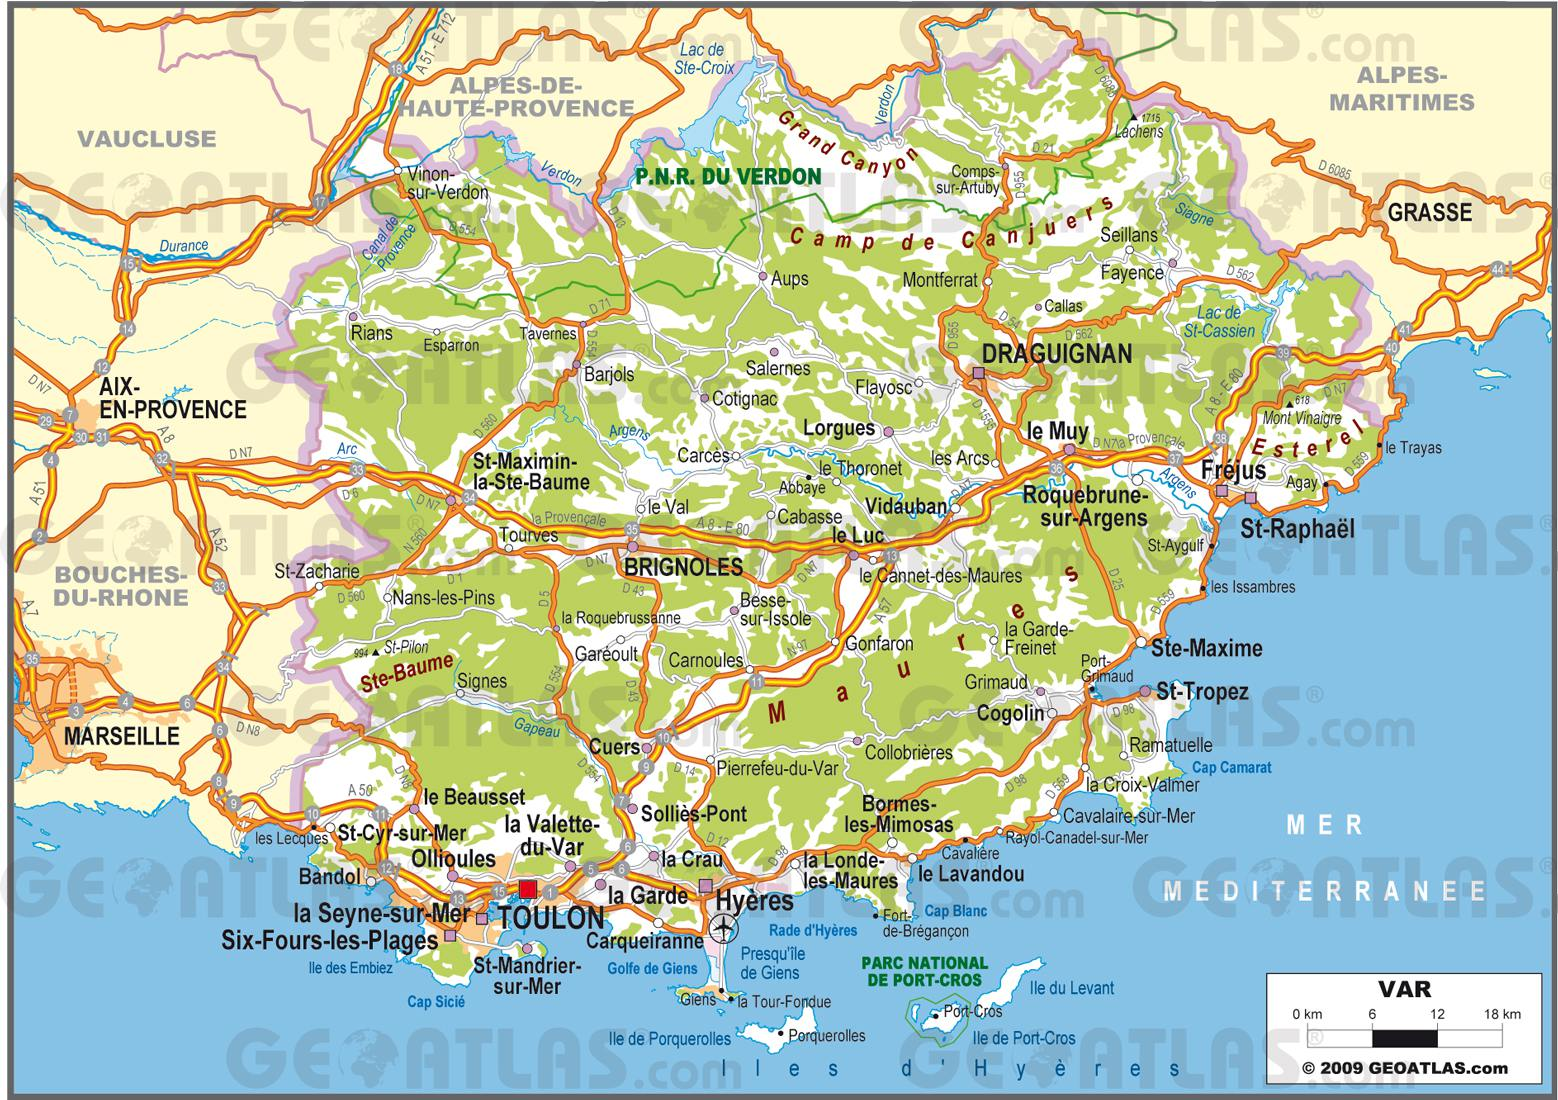 Carte du Var   Carte du département du Var en France   Sites